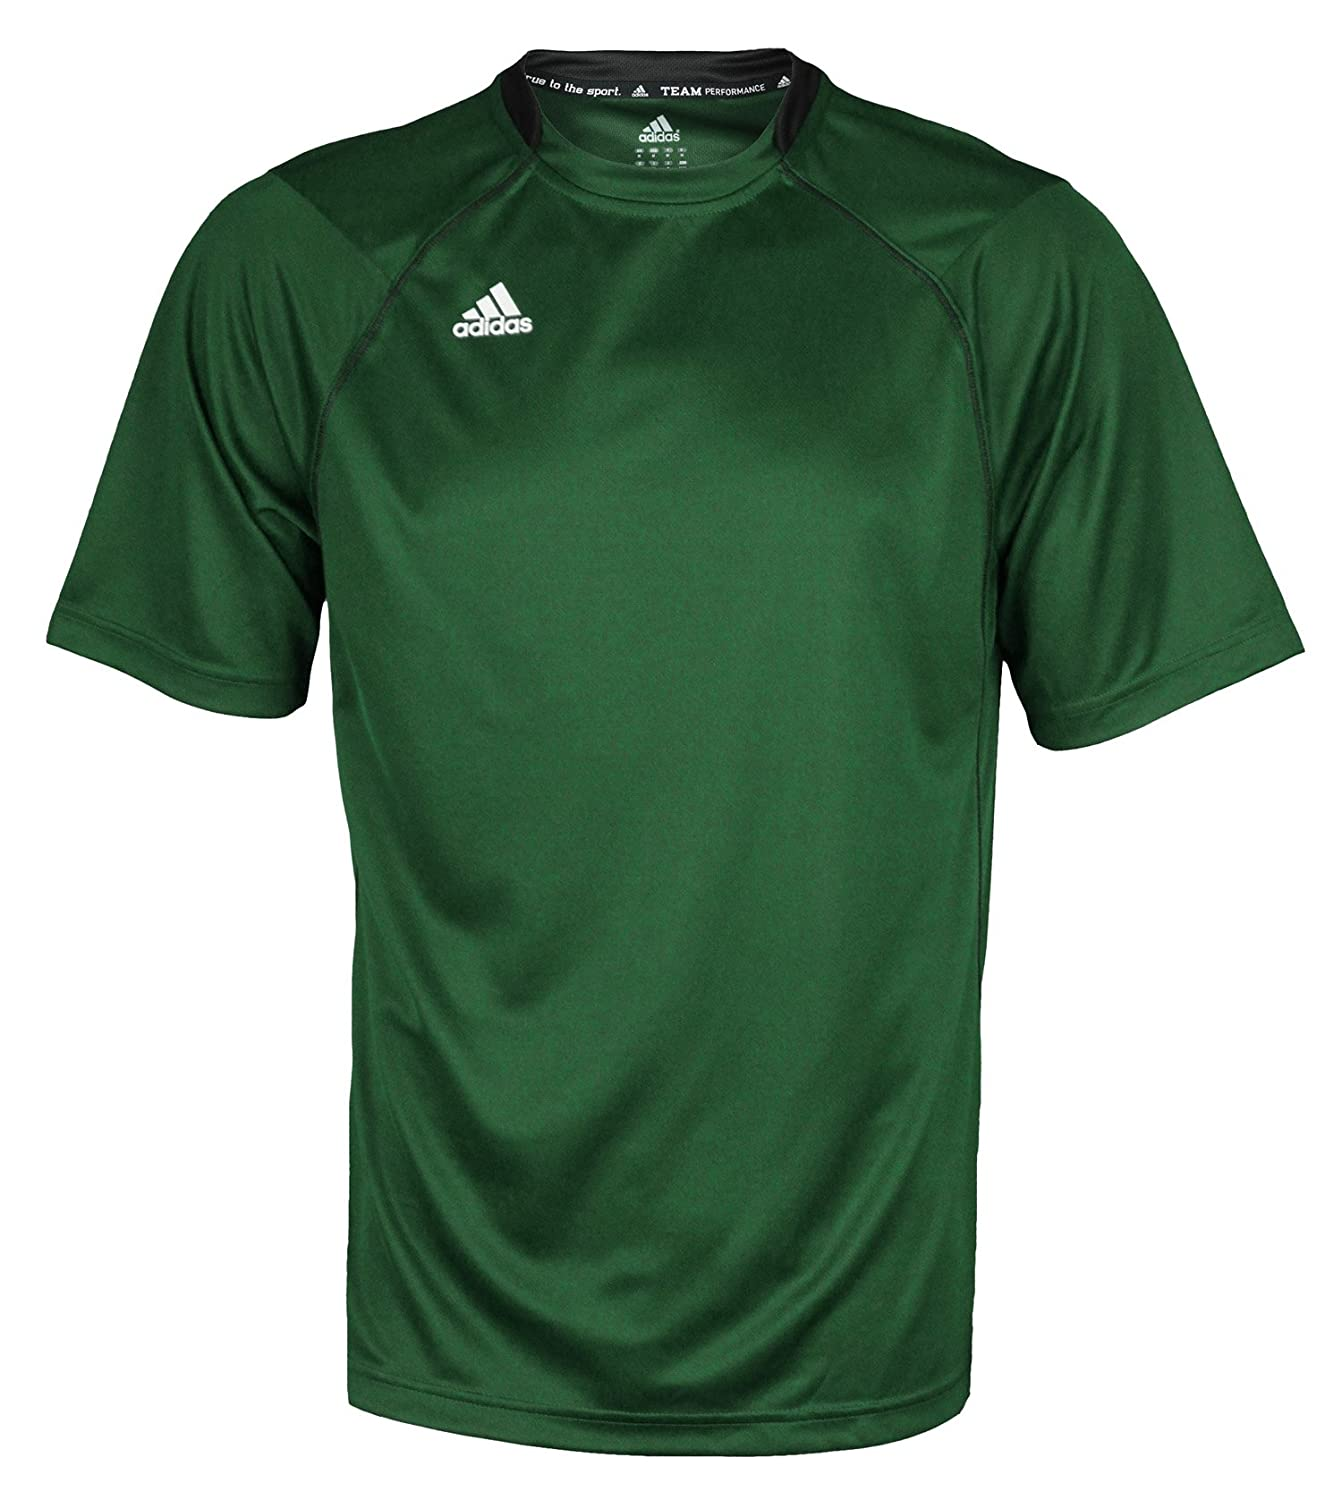 ef8961bd adidas Mens ClimaLite Team Performance Athletic T-shirt at Amazon Men's  Clothing store: